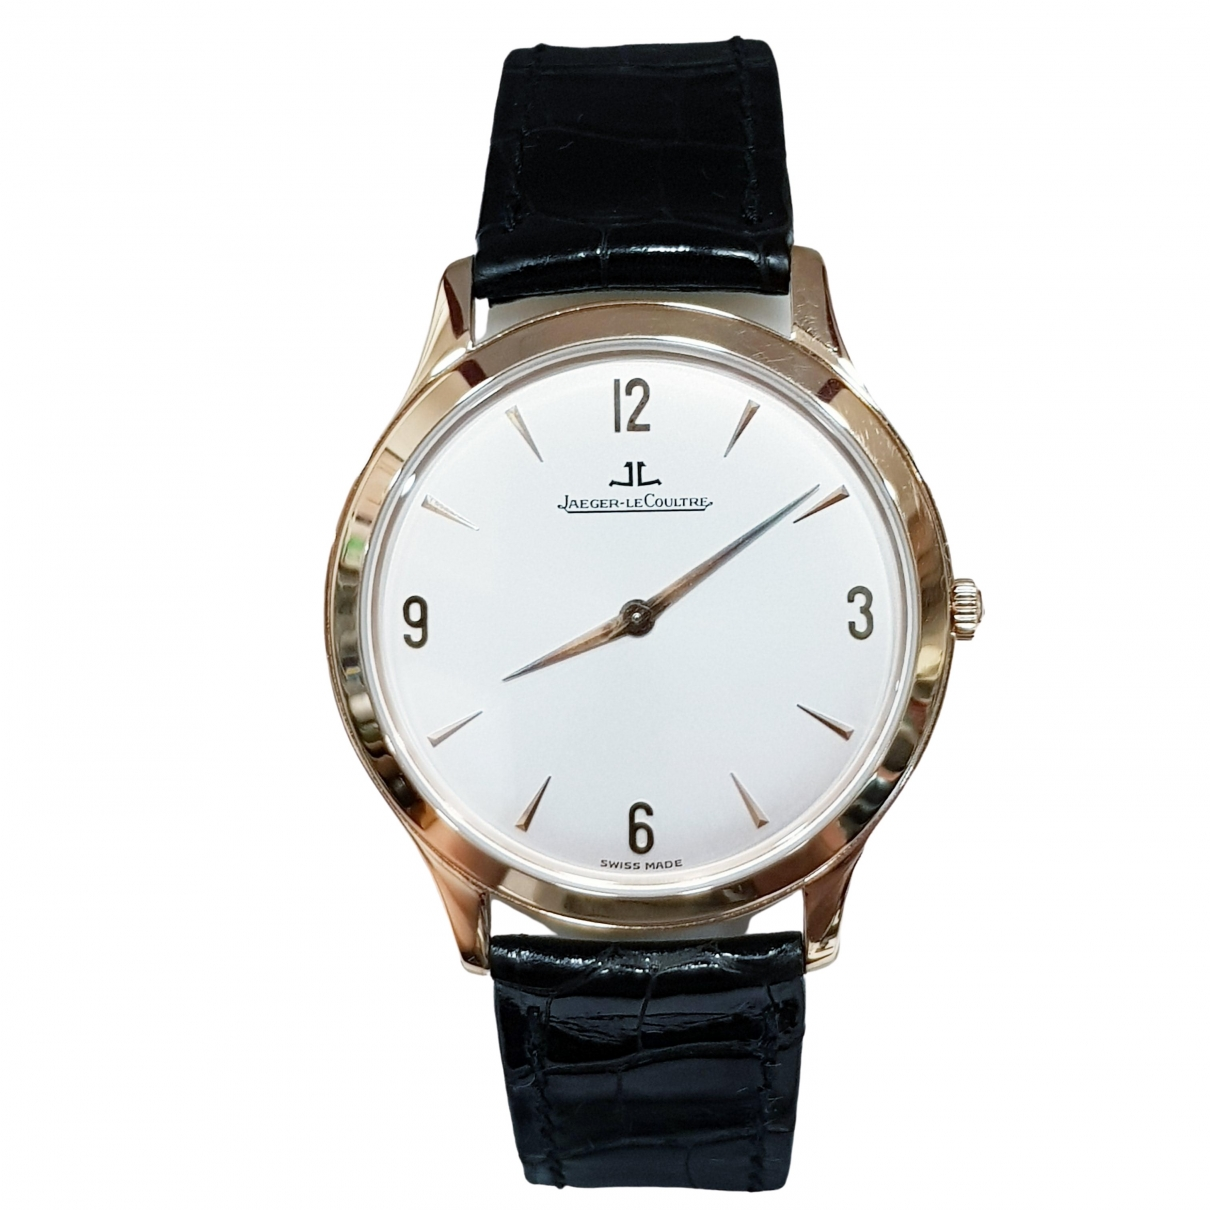 Jaeger-lecoultre \N White Pink gold watch for Men \N